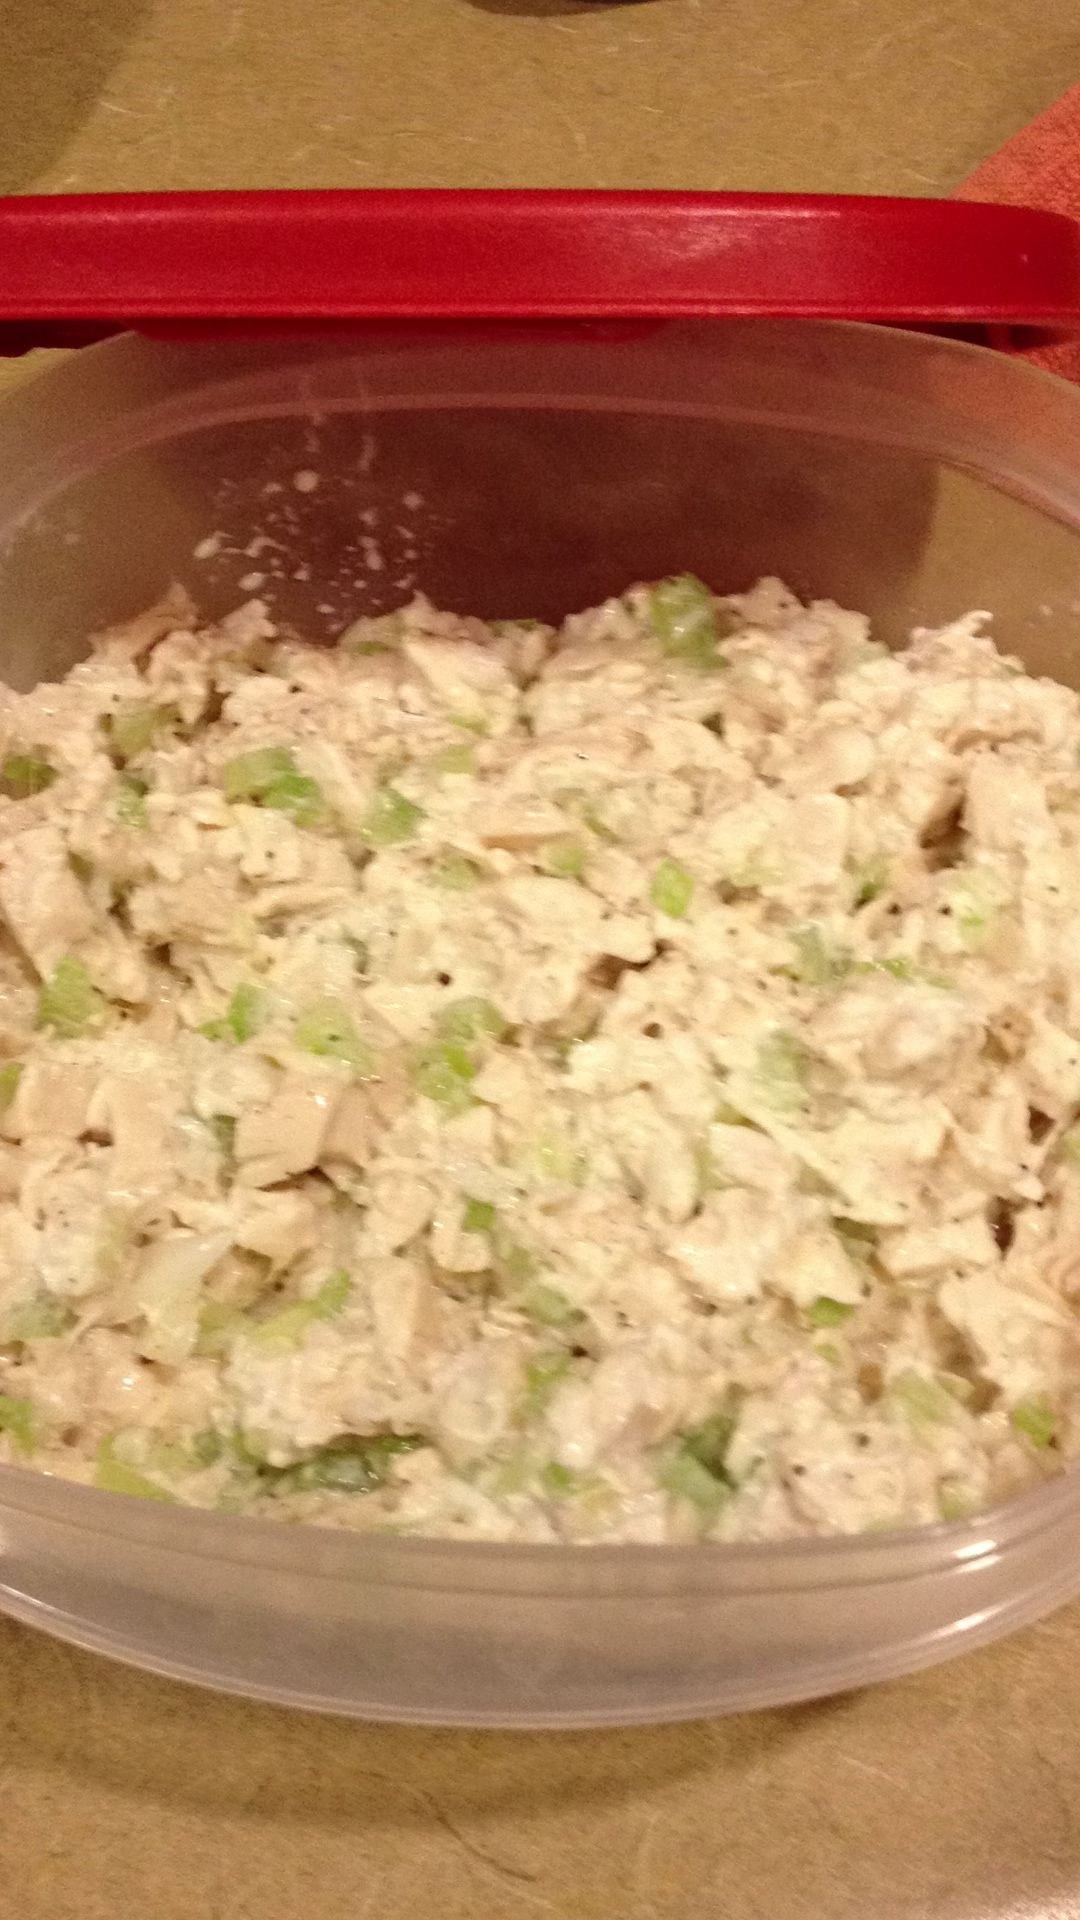 Greek Yogurt Chicken Salad  Low cal high protein chicken salad.   2 poached chicken breast - chunks  Chobani plain Greek yogurt 1 small onion chopped  1 large celery stalk chopped  Salt and pepper to taste   I serve on a soft whole wheat bun  No mayo!! No oil!!!